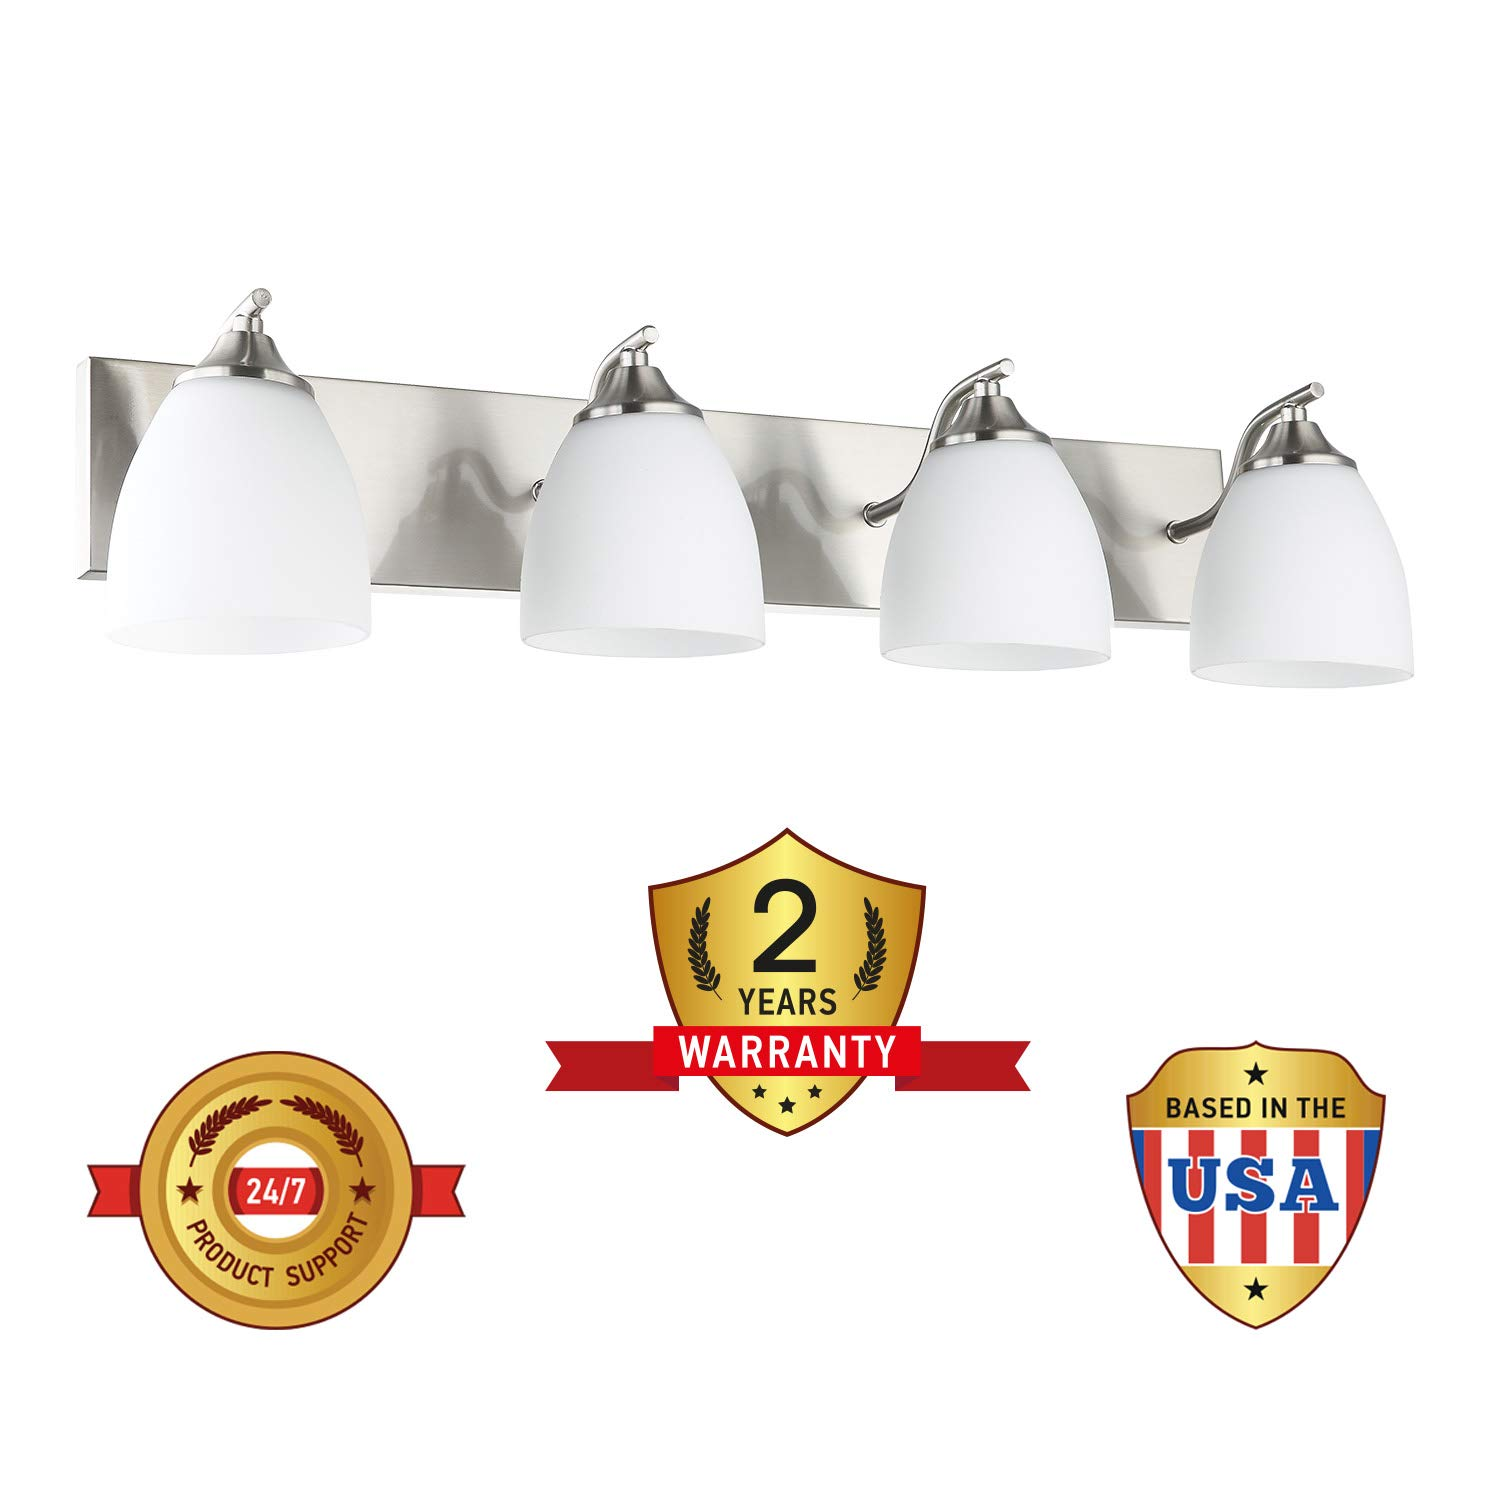 3x60 Watt E26 Socket Satin Nickel Finish with Opal Oval Cone Glass Shade OSTWIN 3-Light Bath Bar Light Up or Down Interior Bathroom Vanity Wall Lighting Fixture VF42 UL Listed